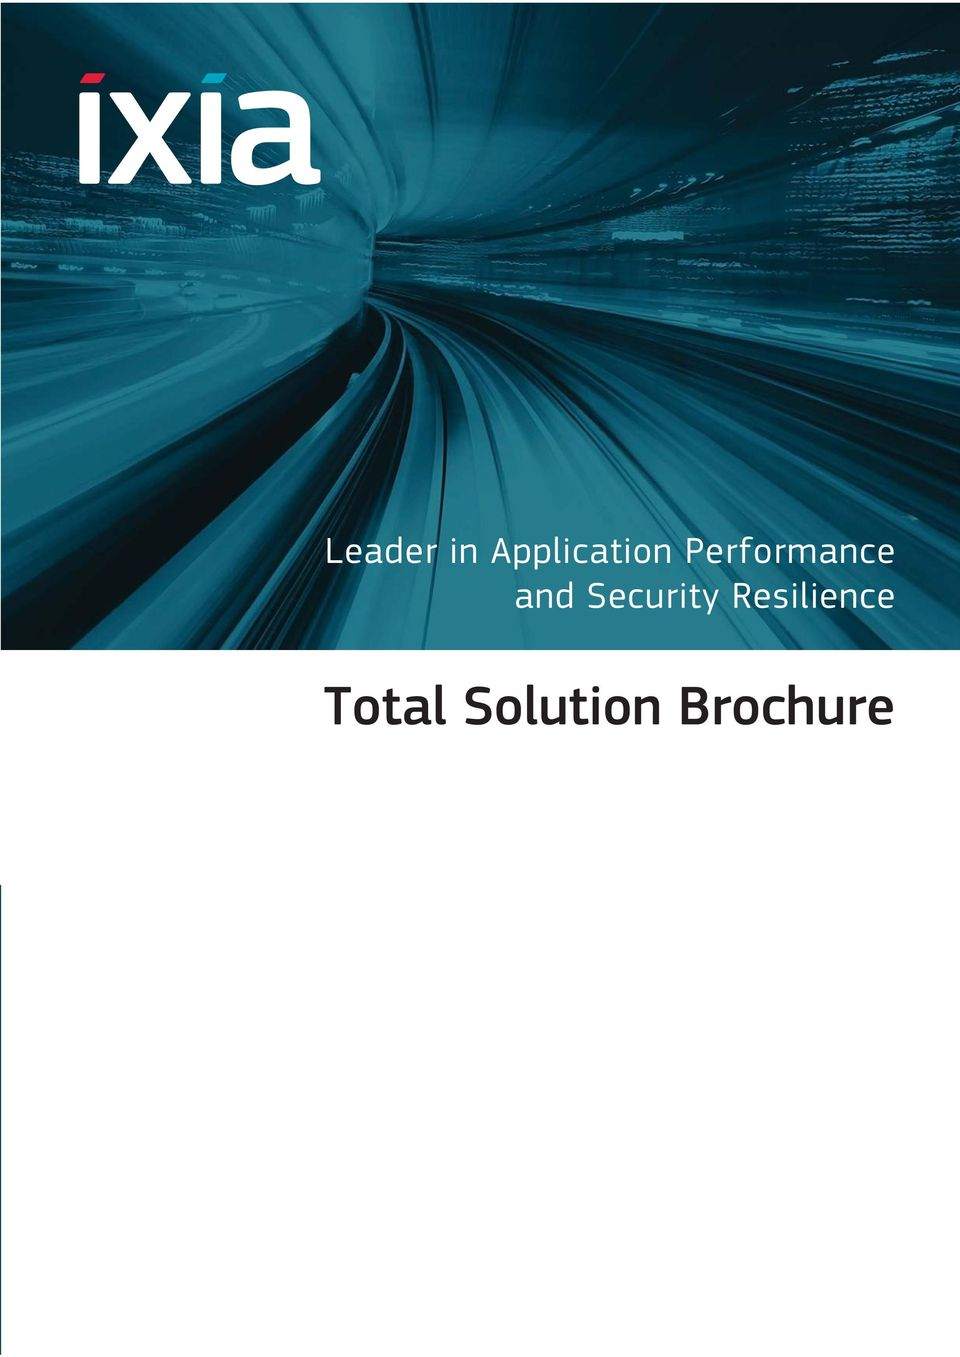 Leader in Application Performance and Security Resilience